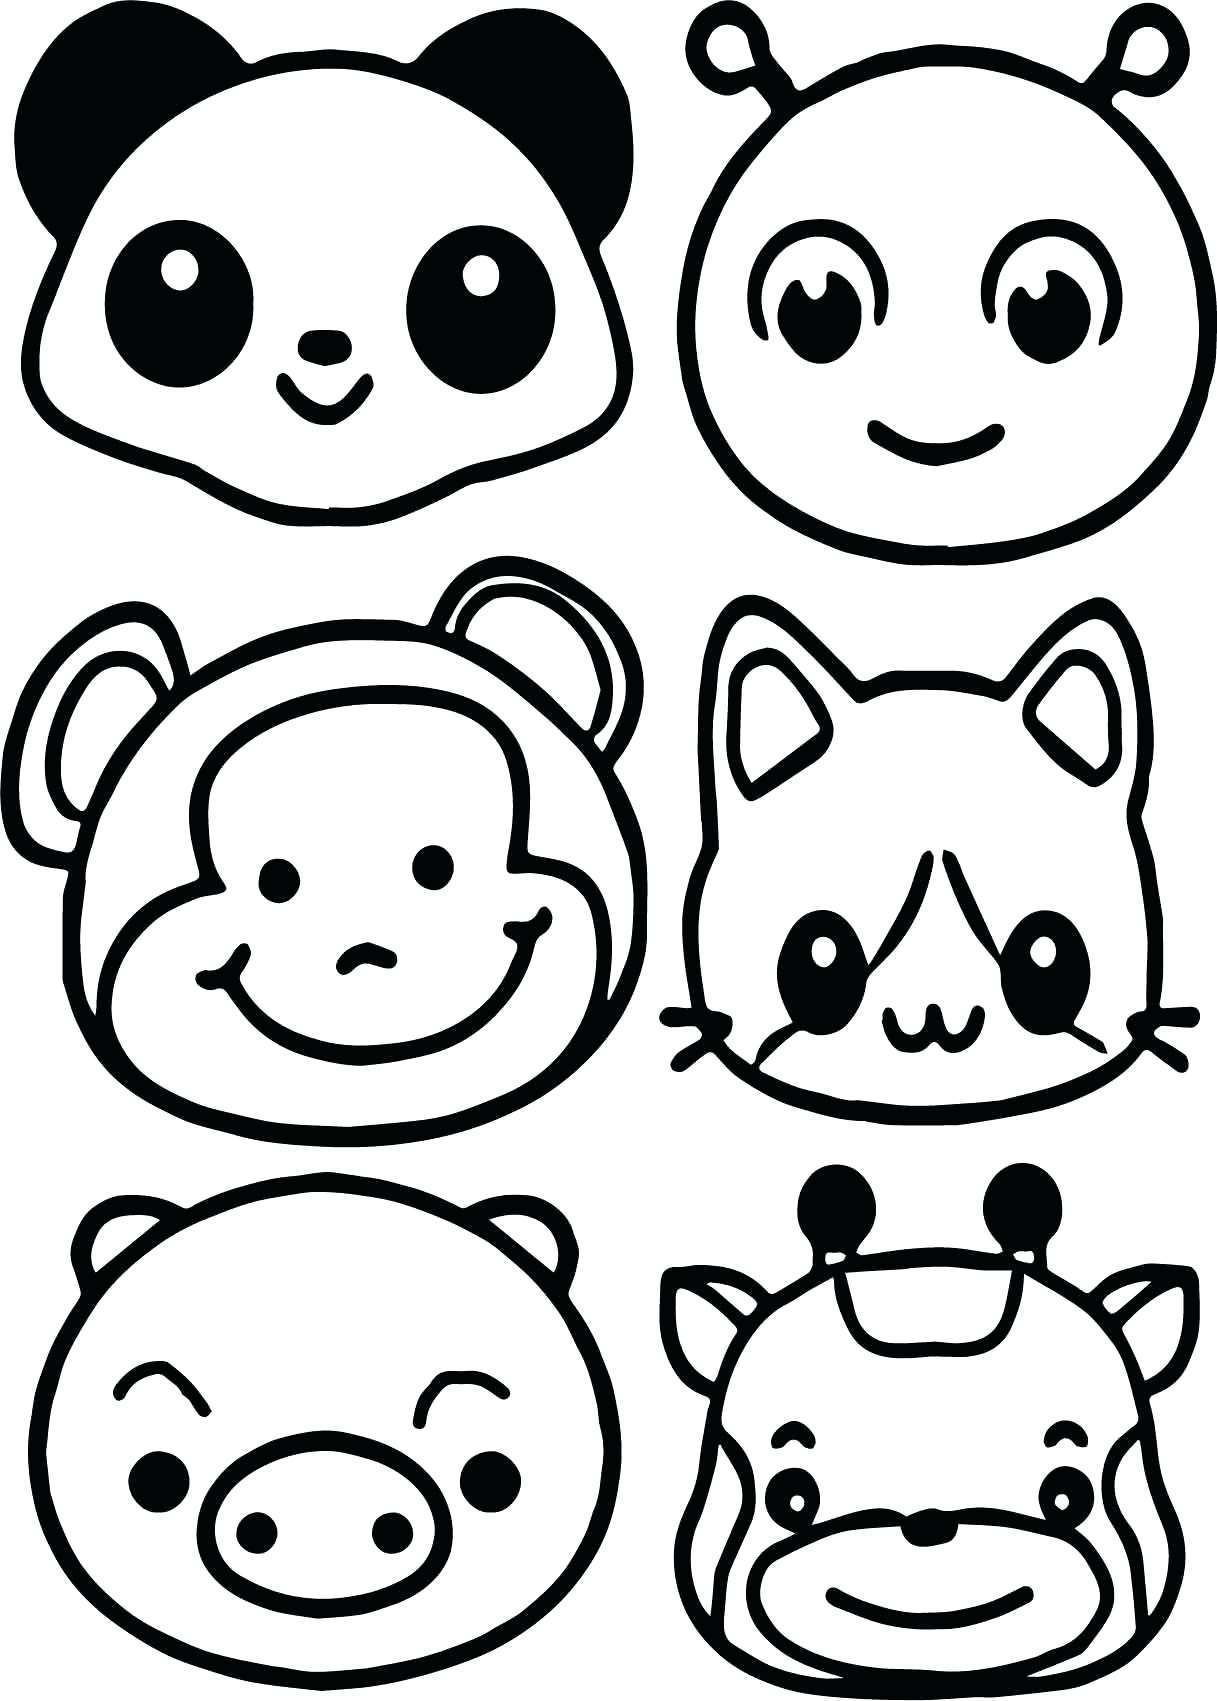 Animal Faces For Coloring In 2020 Unicorn Coloring Pages Coloring Pages Kitty Coloring Di 2021